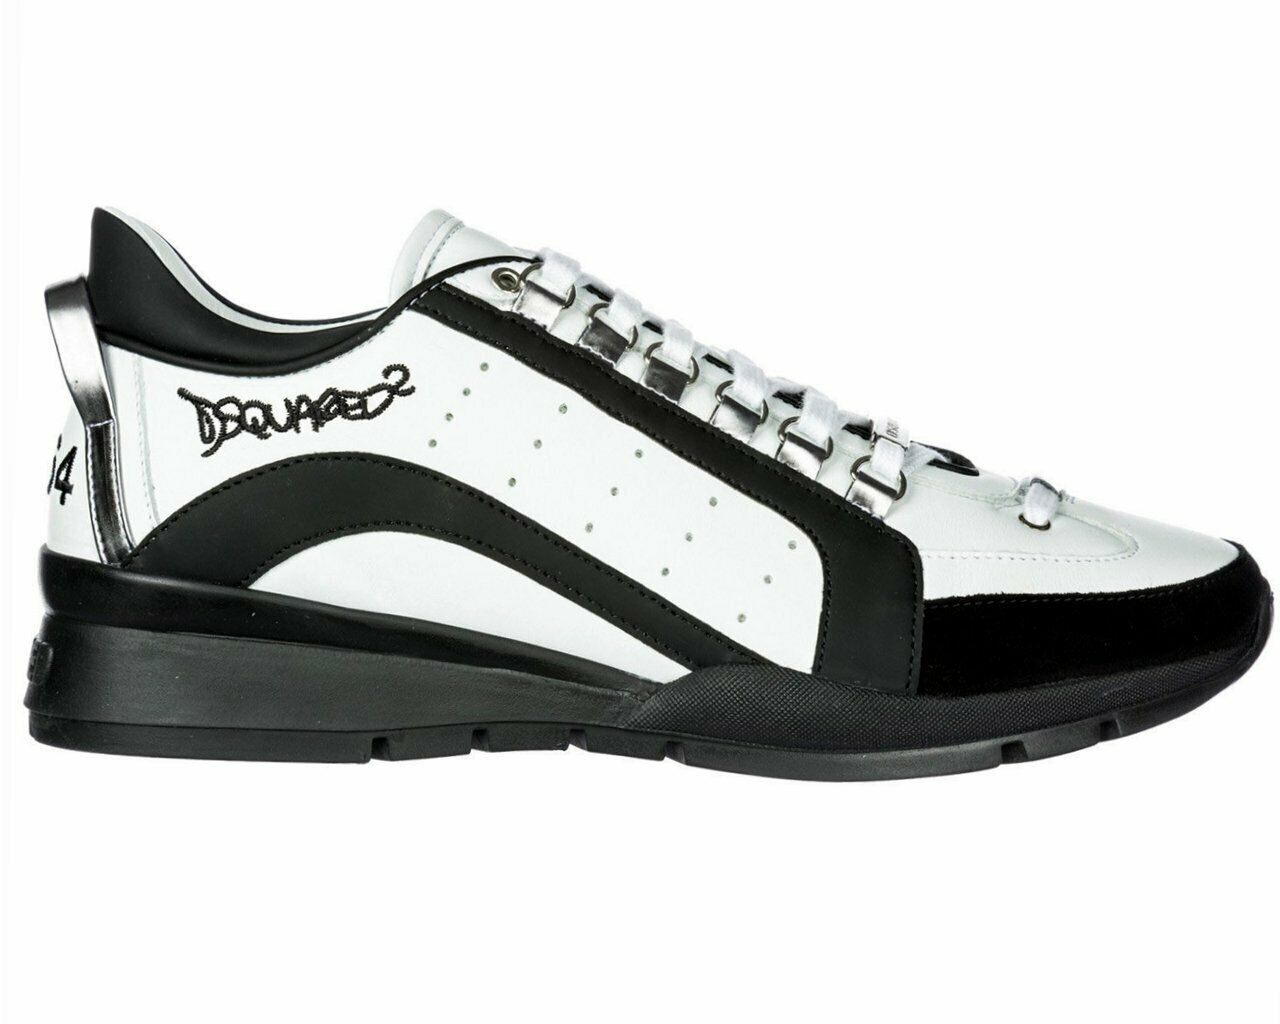 Dsquared2 551 Sneakers Snm0404 M072 Leather Dsquared Trainers White